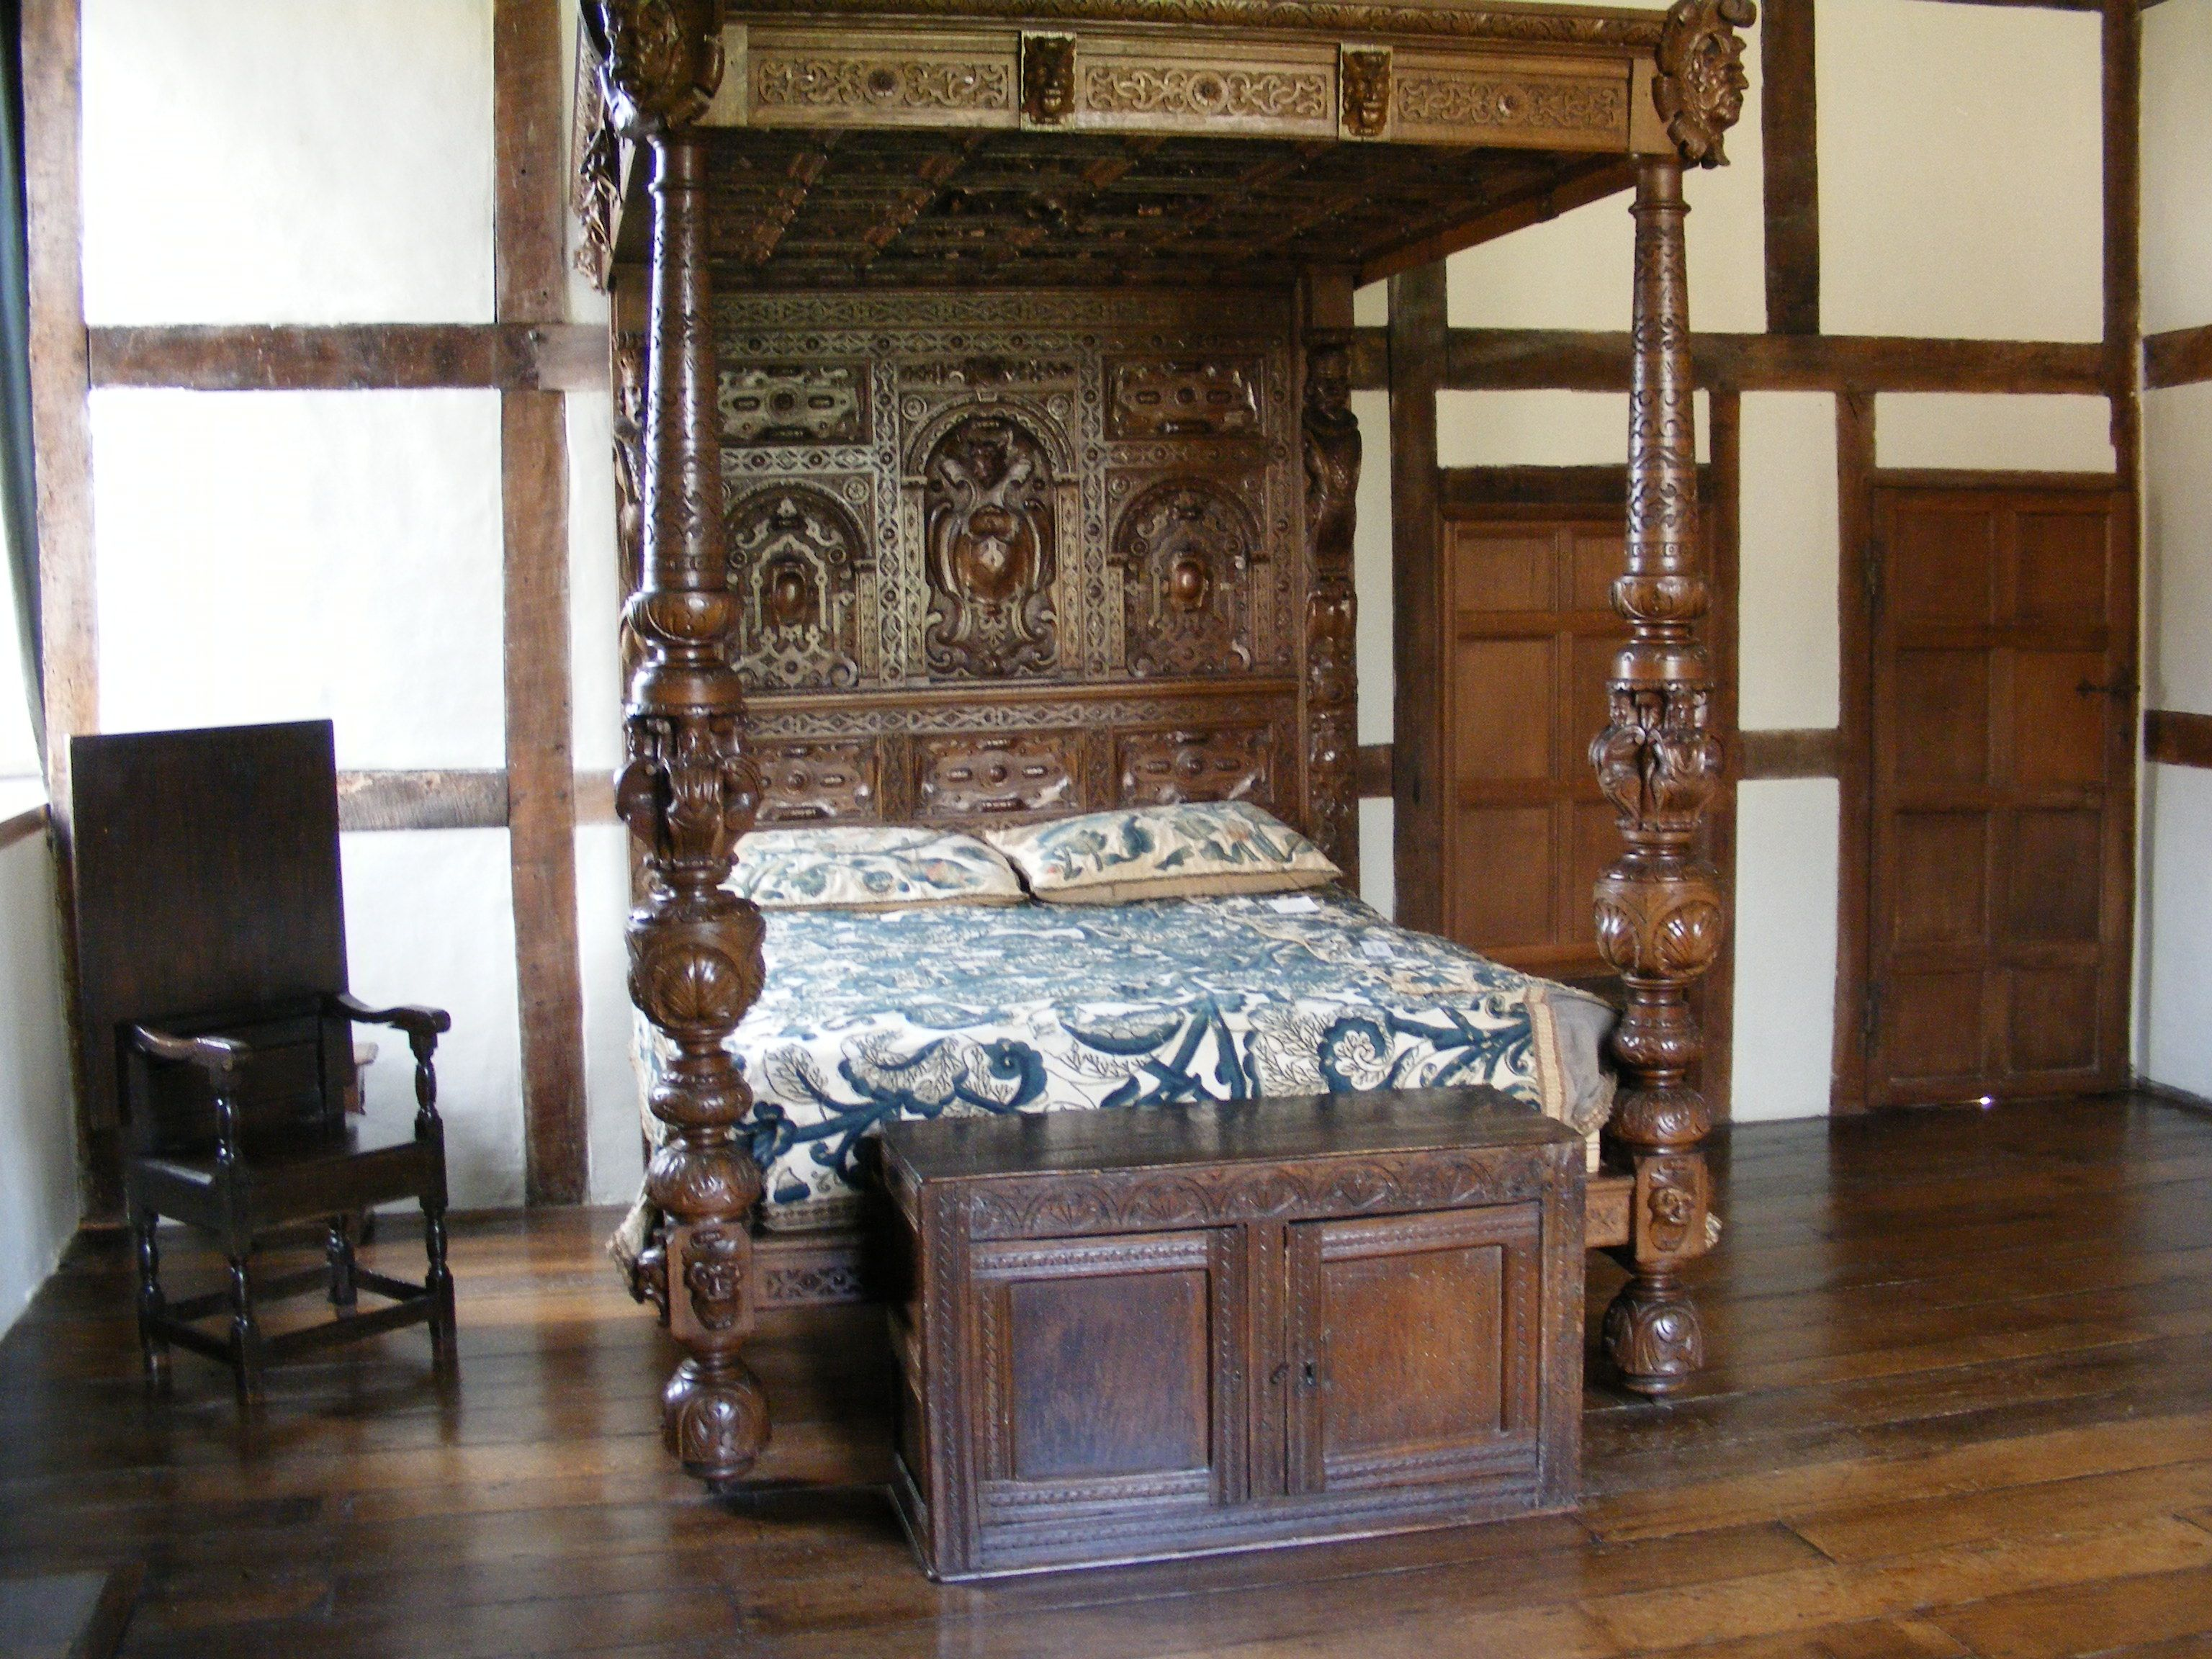 breamore house tudor bedroom in tudor part of the home tudor